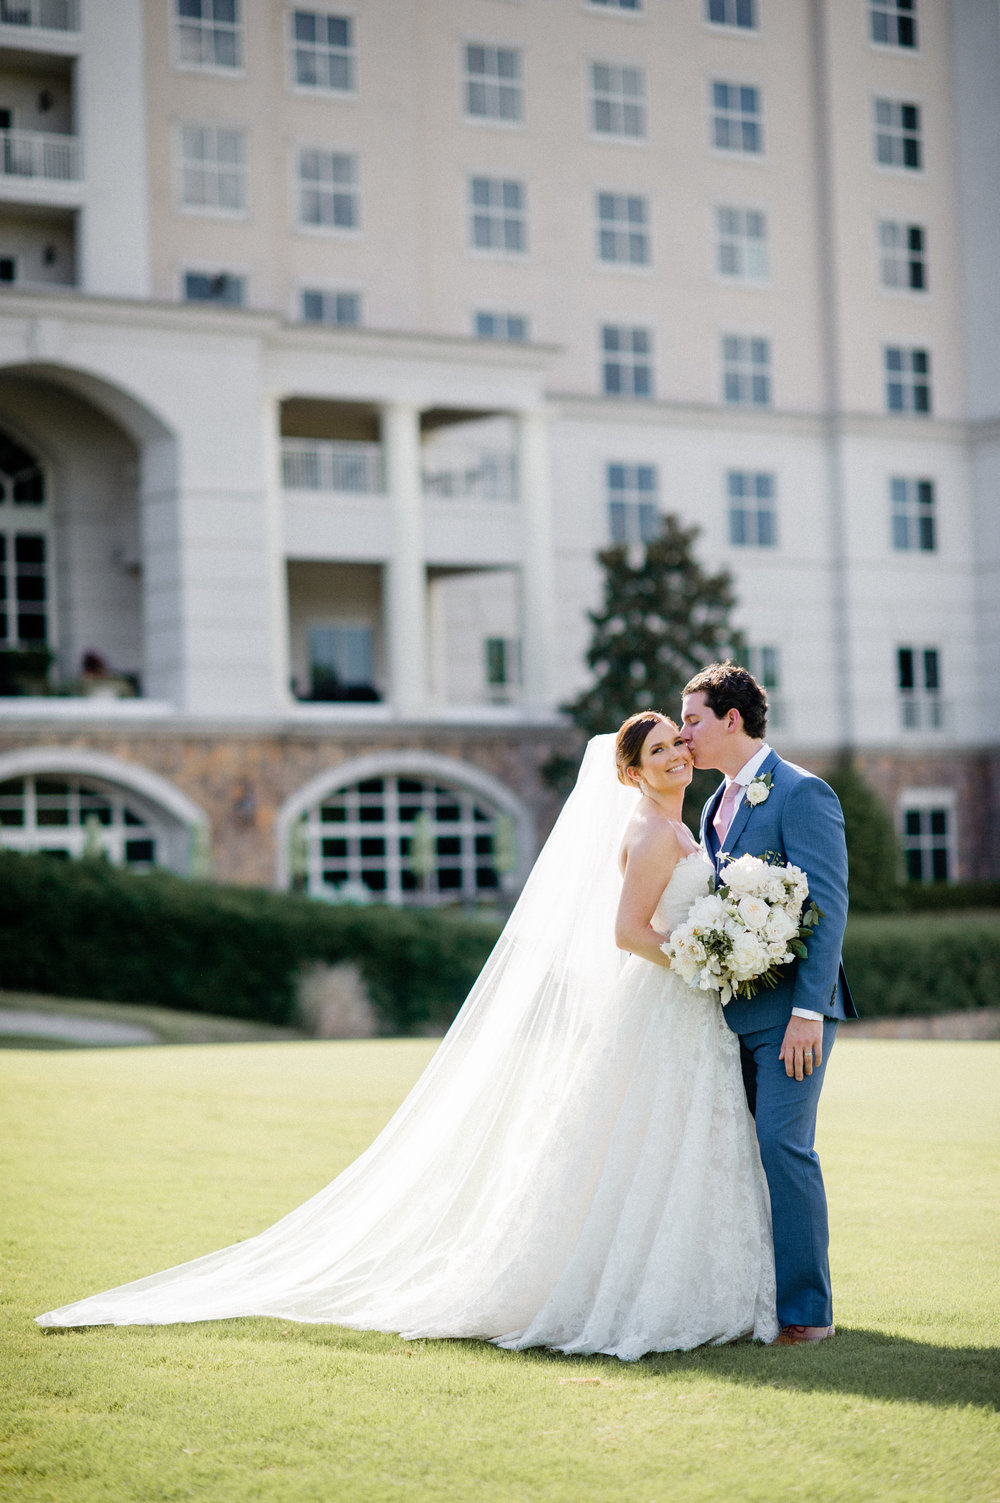 Katie + Jack - The Ballantyne Hotel